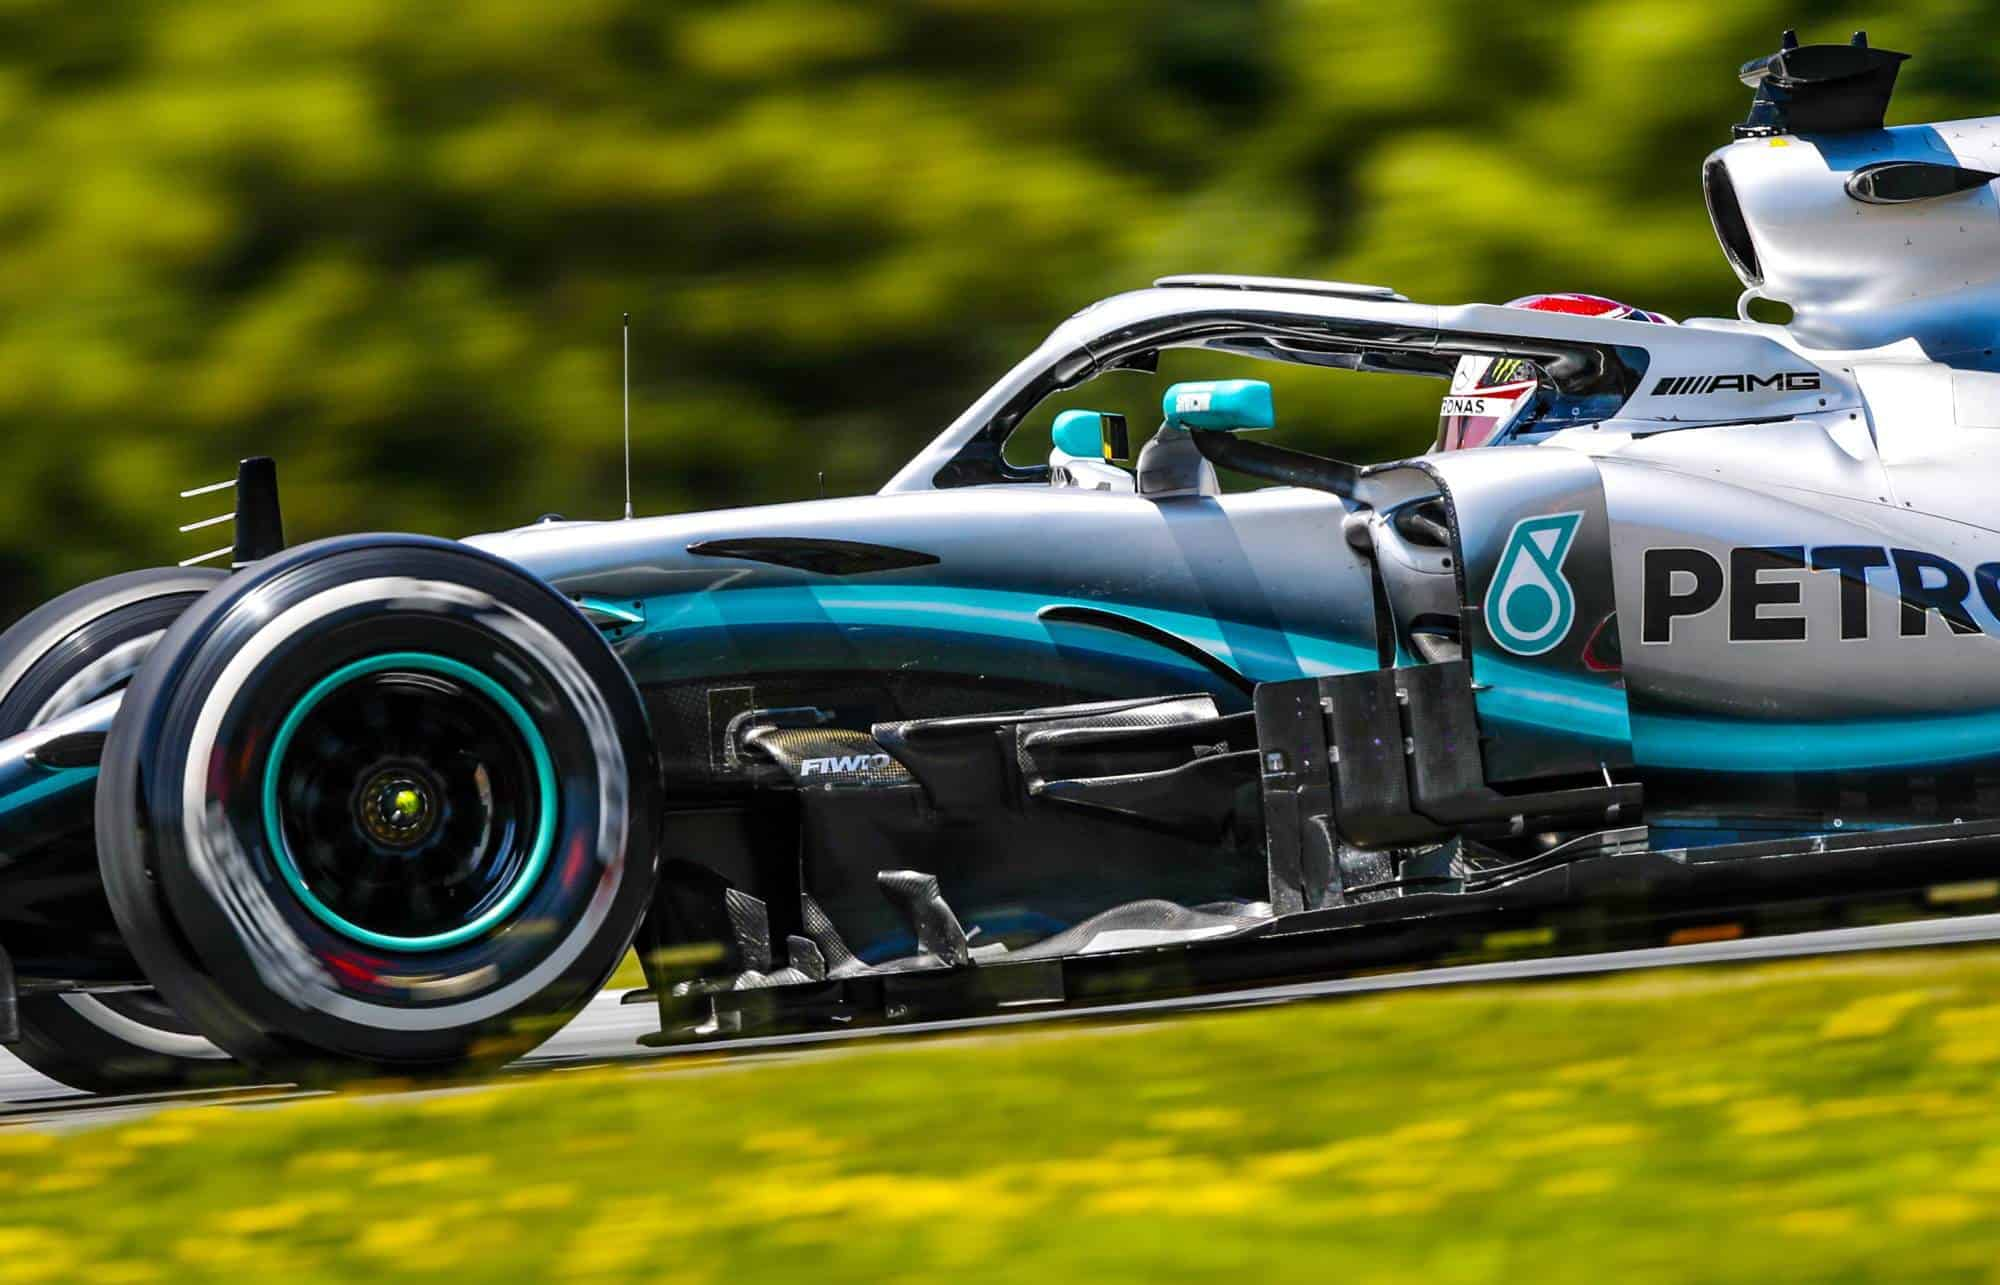 Hamilton Mercedes F1 W10 Austrian GP F1 2019 side view Photo Daimler